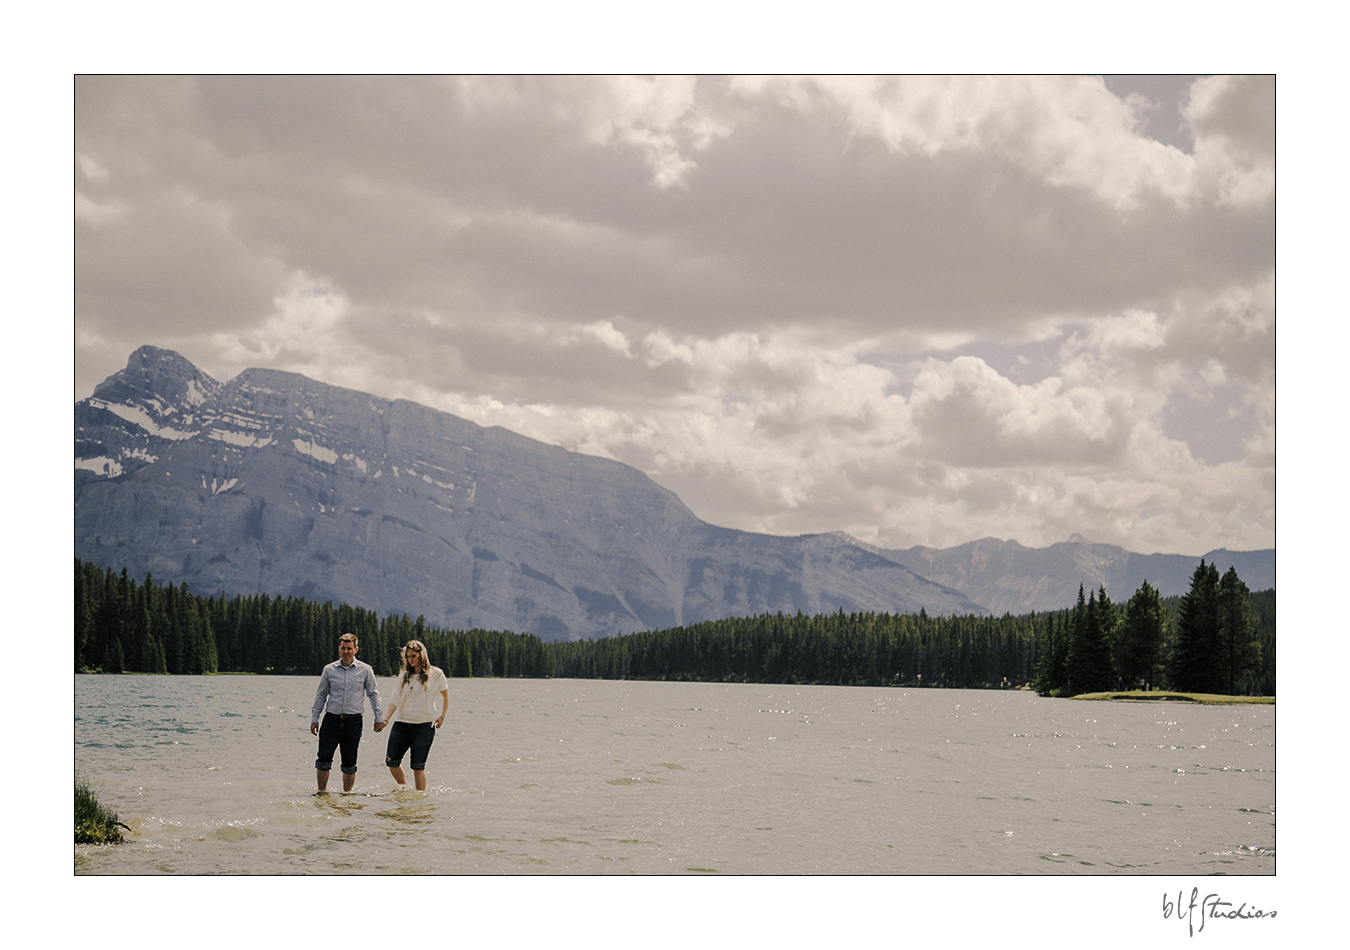 00006-blfstudios-banff-engagement-photos-amanda-eric.jpg